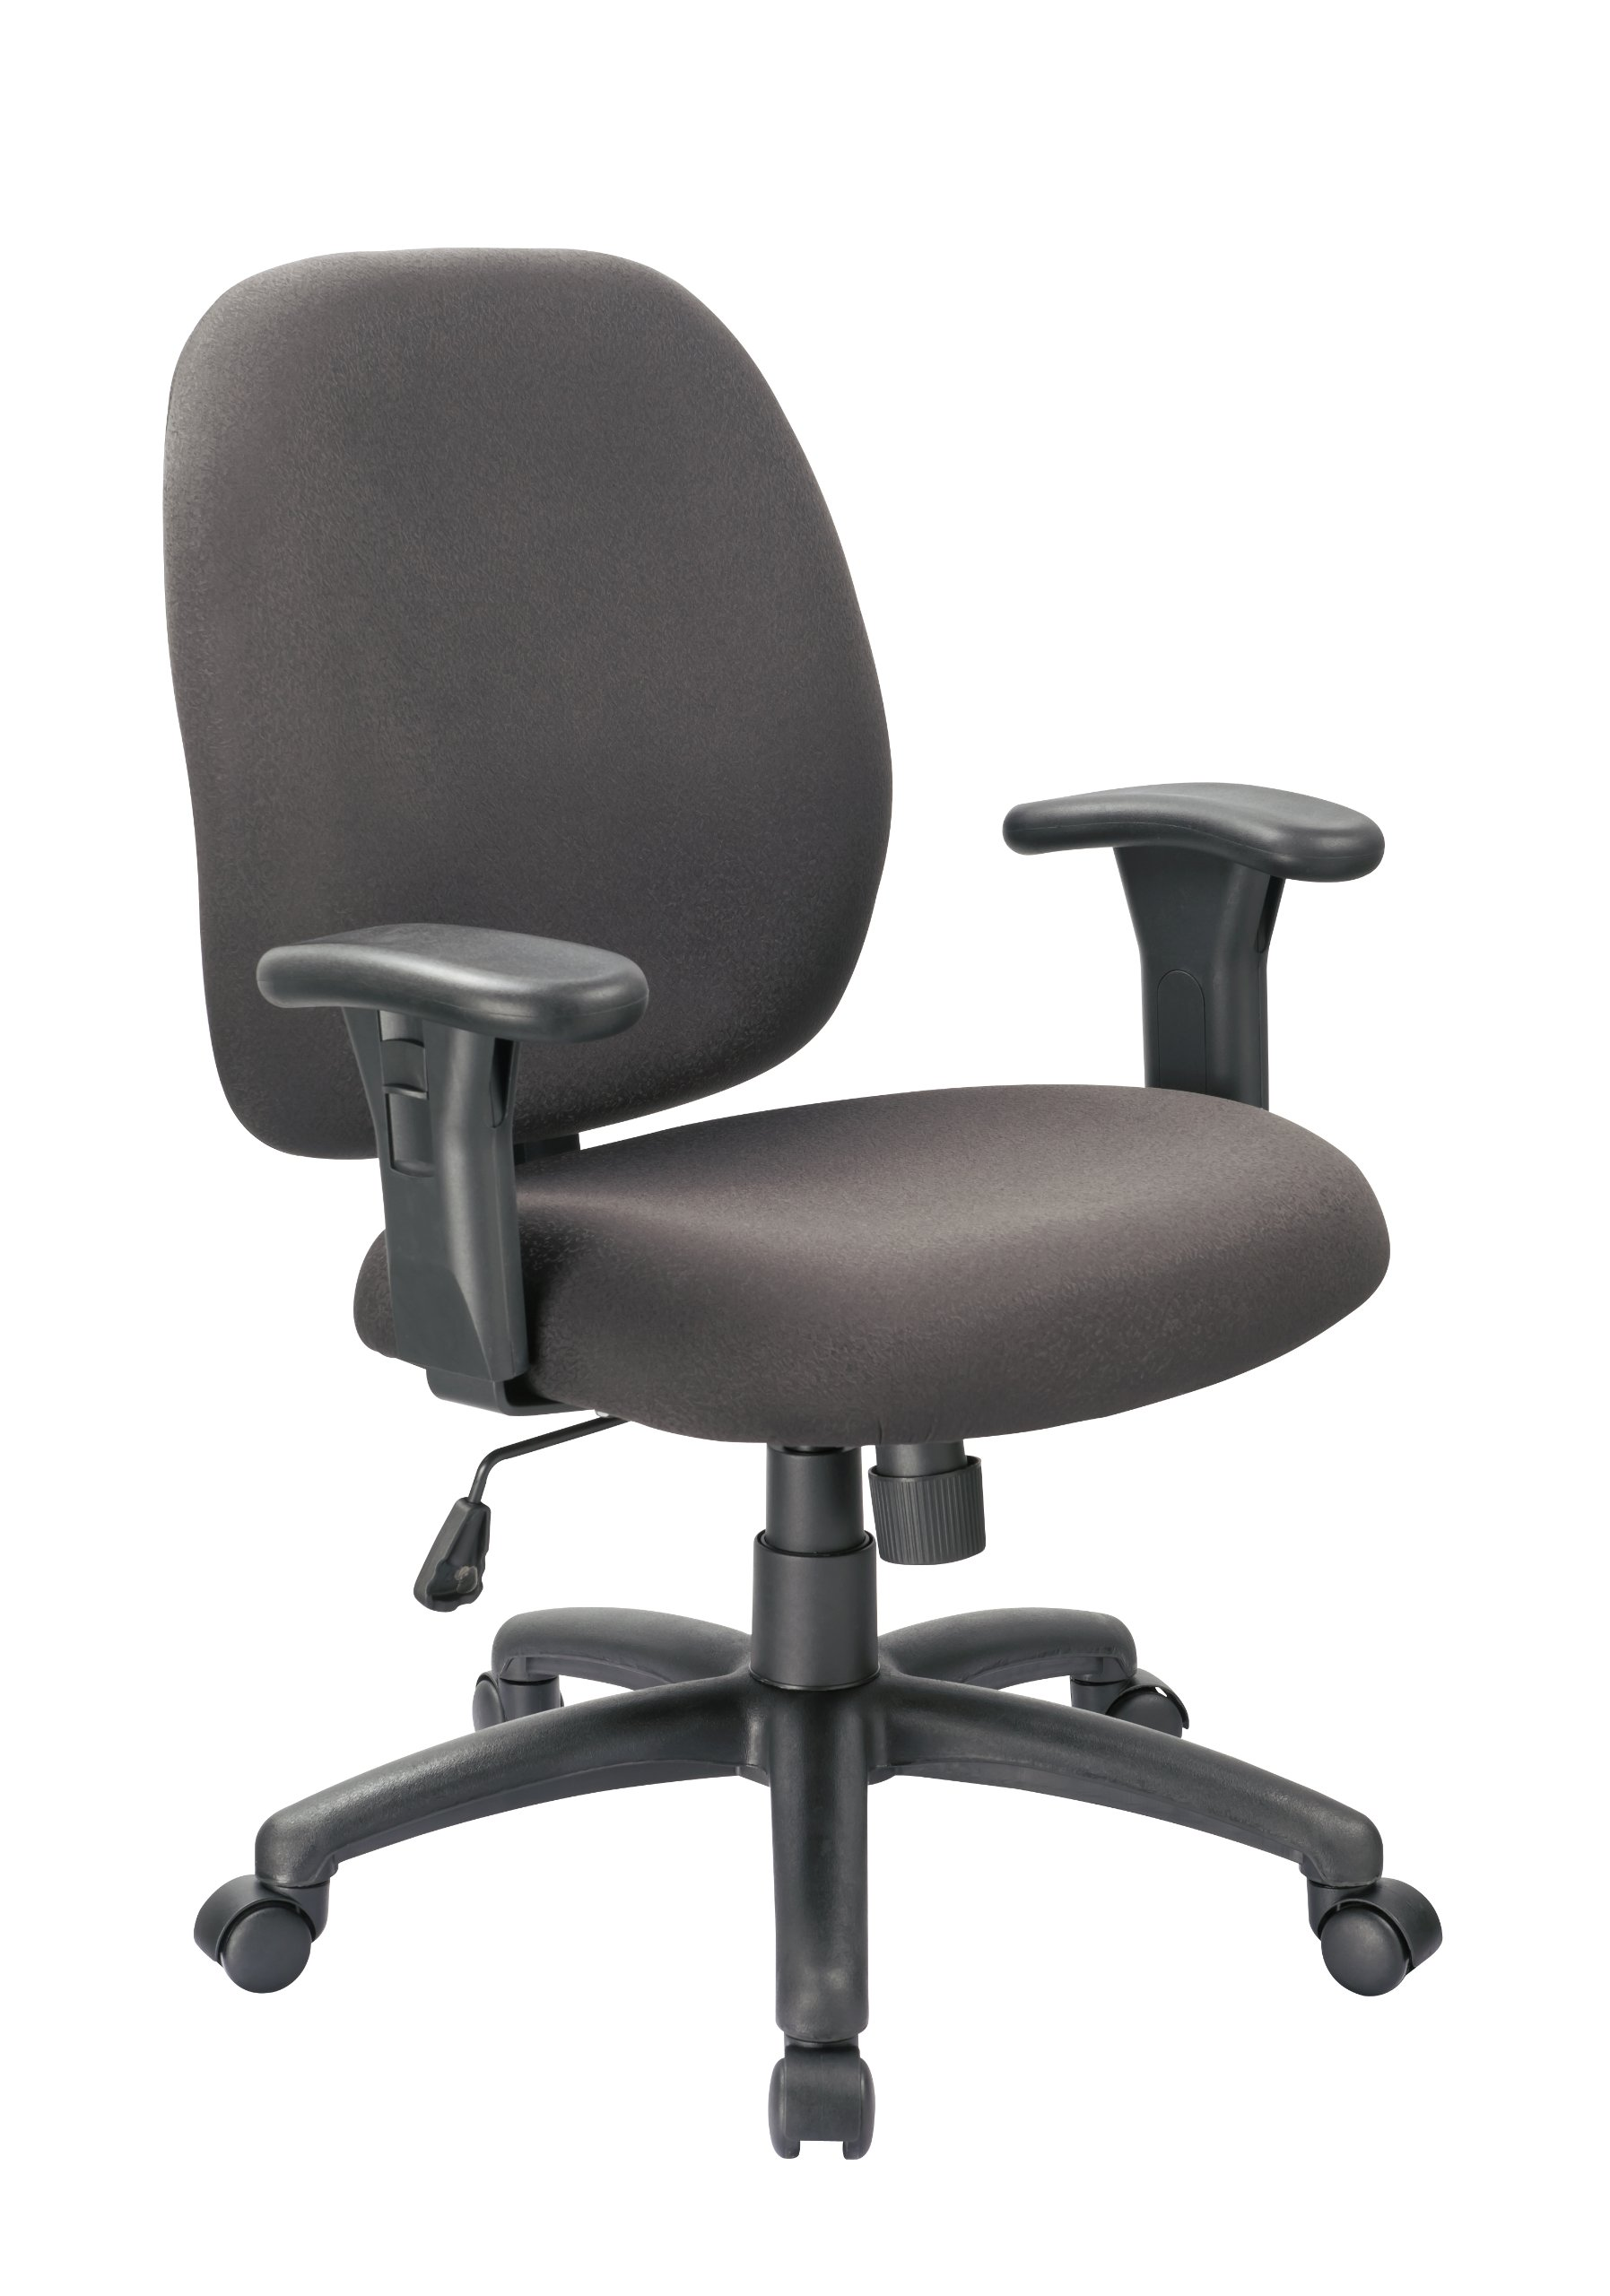 OFFICE FACTOR, Black Task Office Chair, Swivel Adjustable Arms Rest, Lumbar Support, Durable, Commercial Grade Fabric, 250 LBS WEIGHT CAPACITY